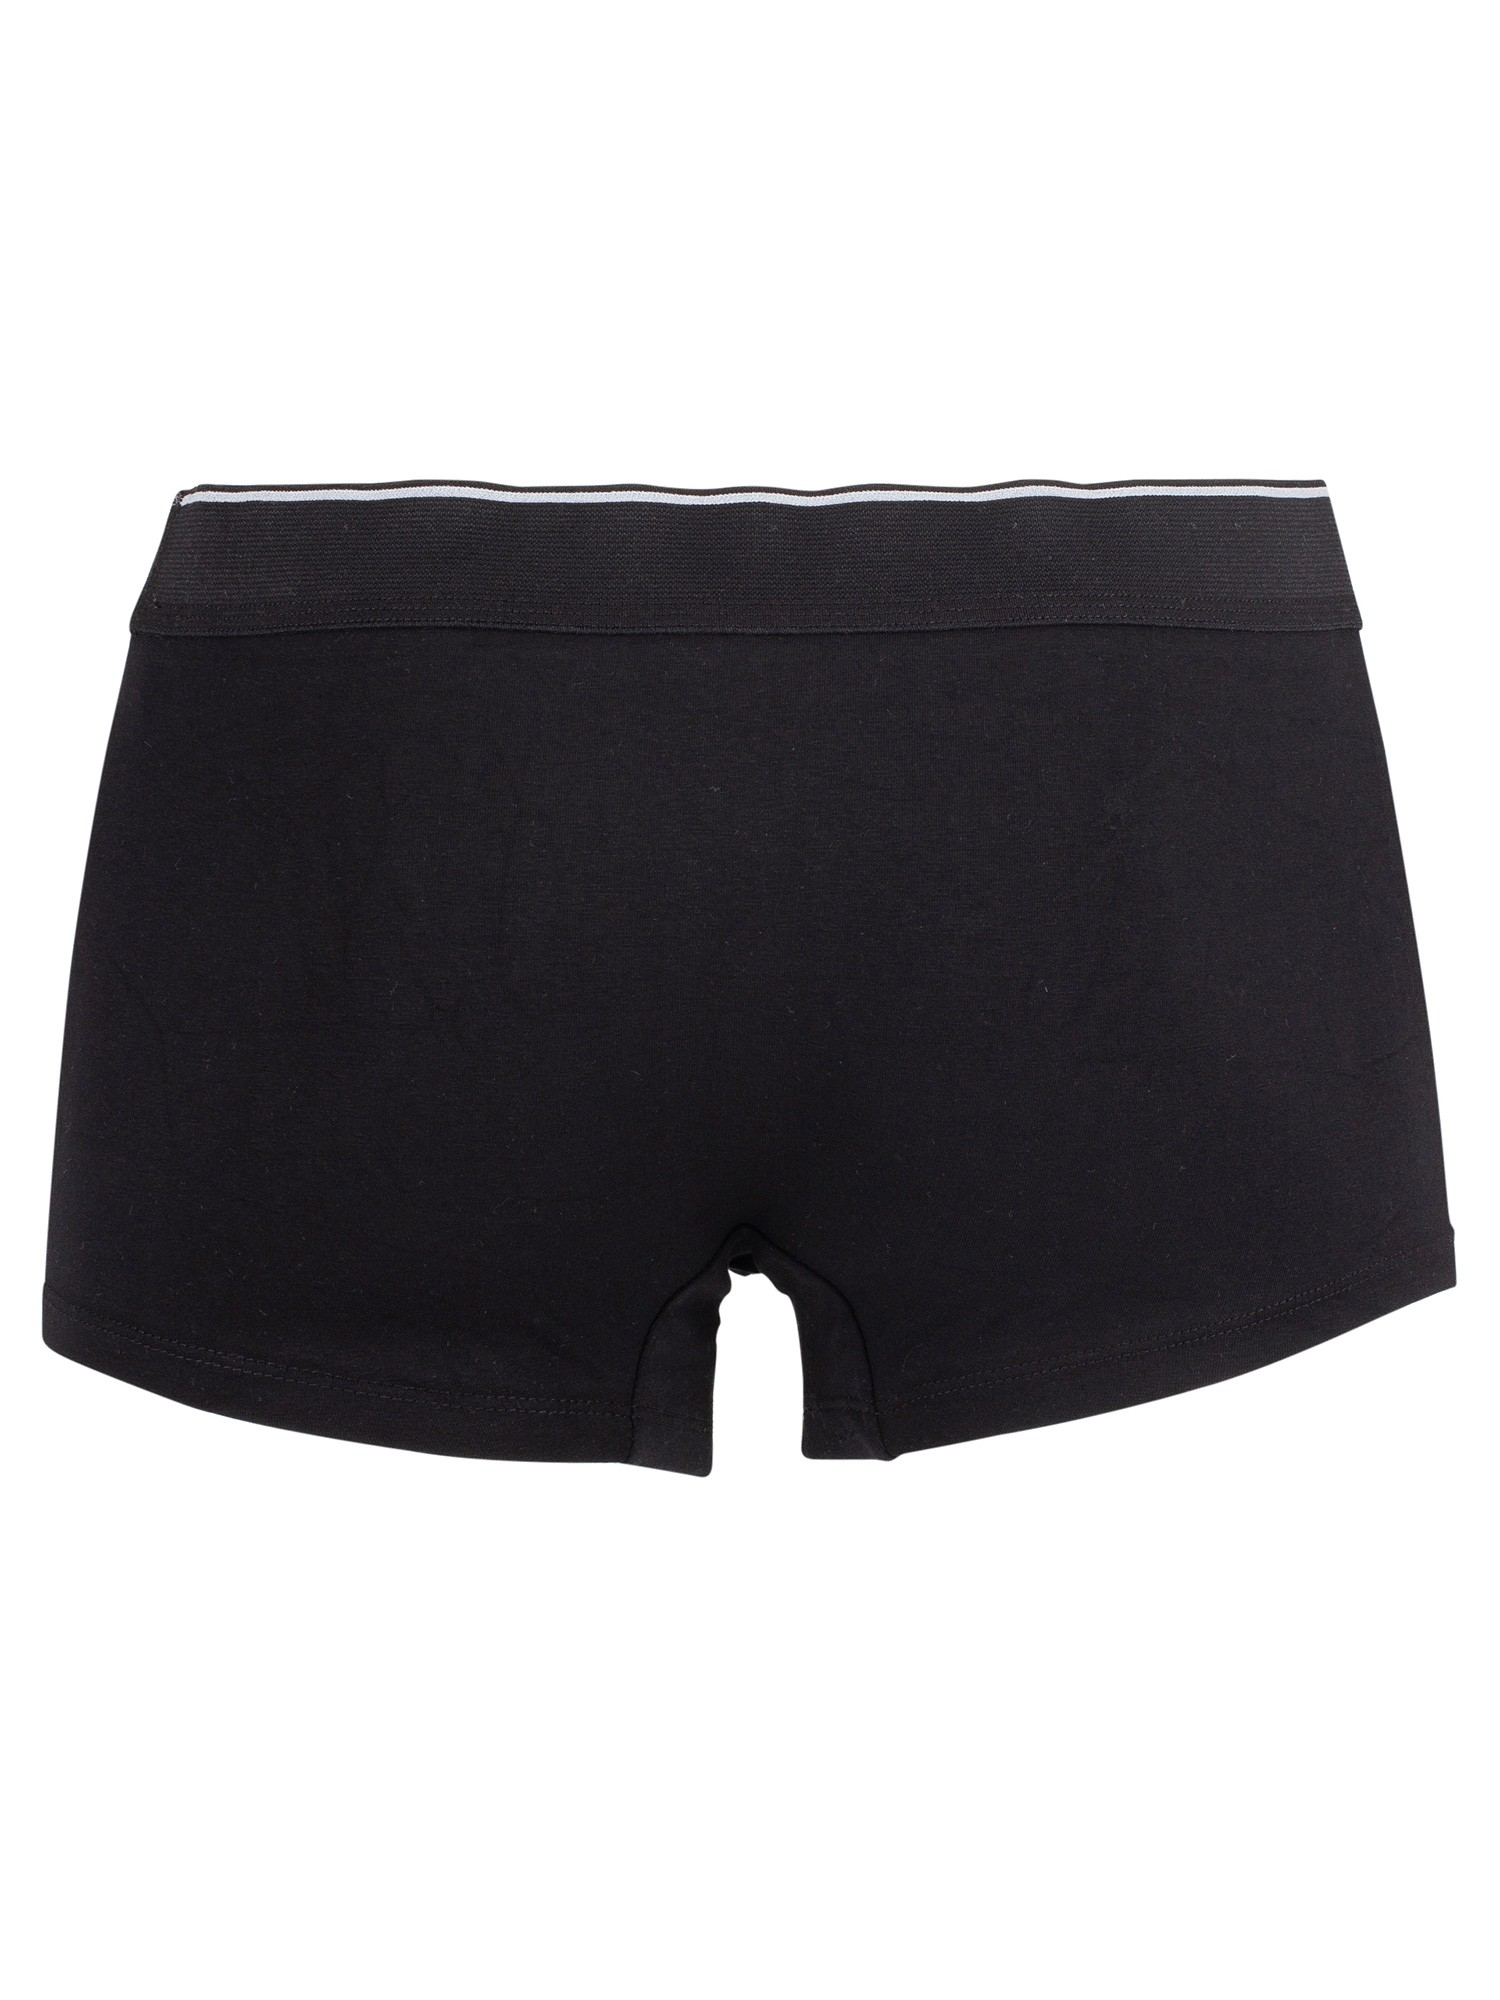 Diesel 3 Pack Trunks - Black/White/Grey